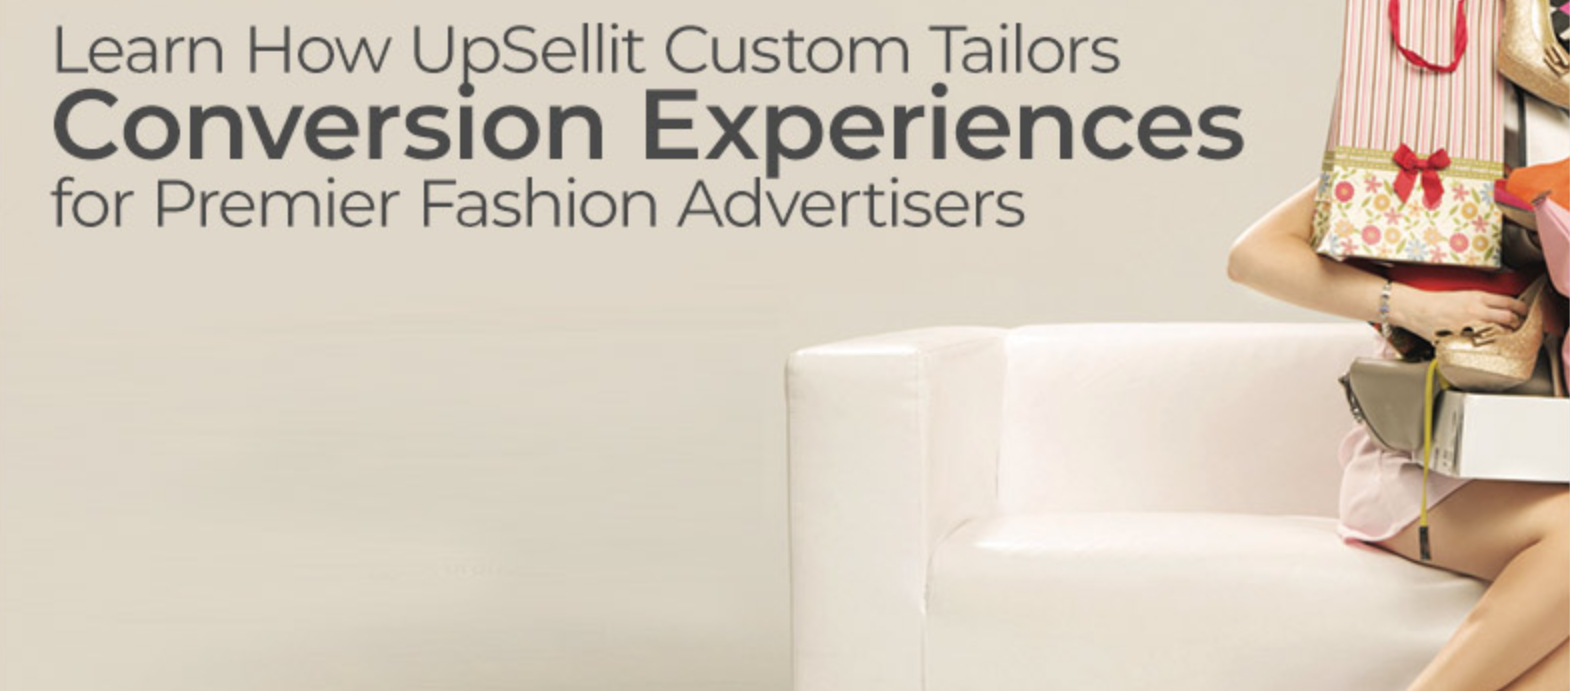 UpSellit custom tailors conversion experiences